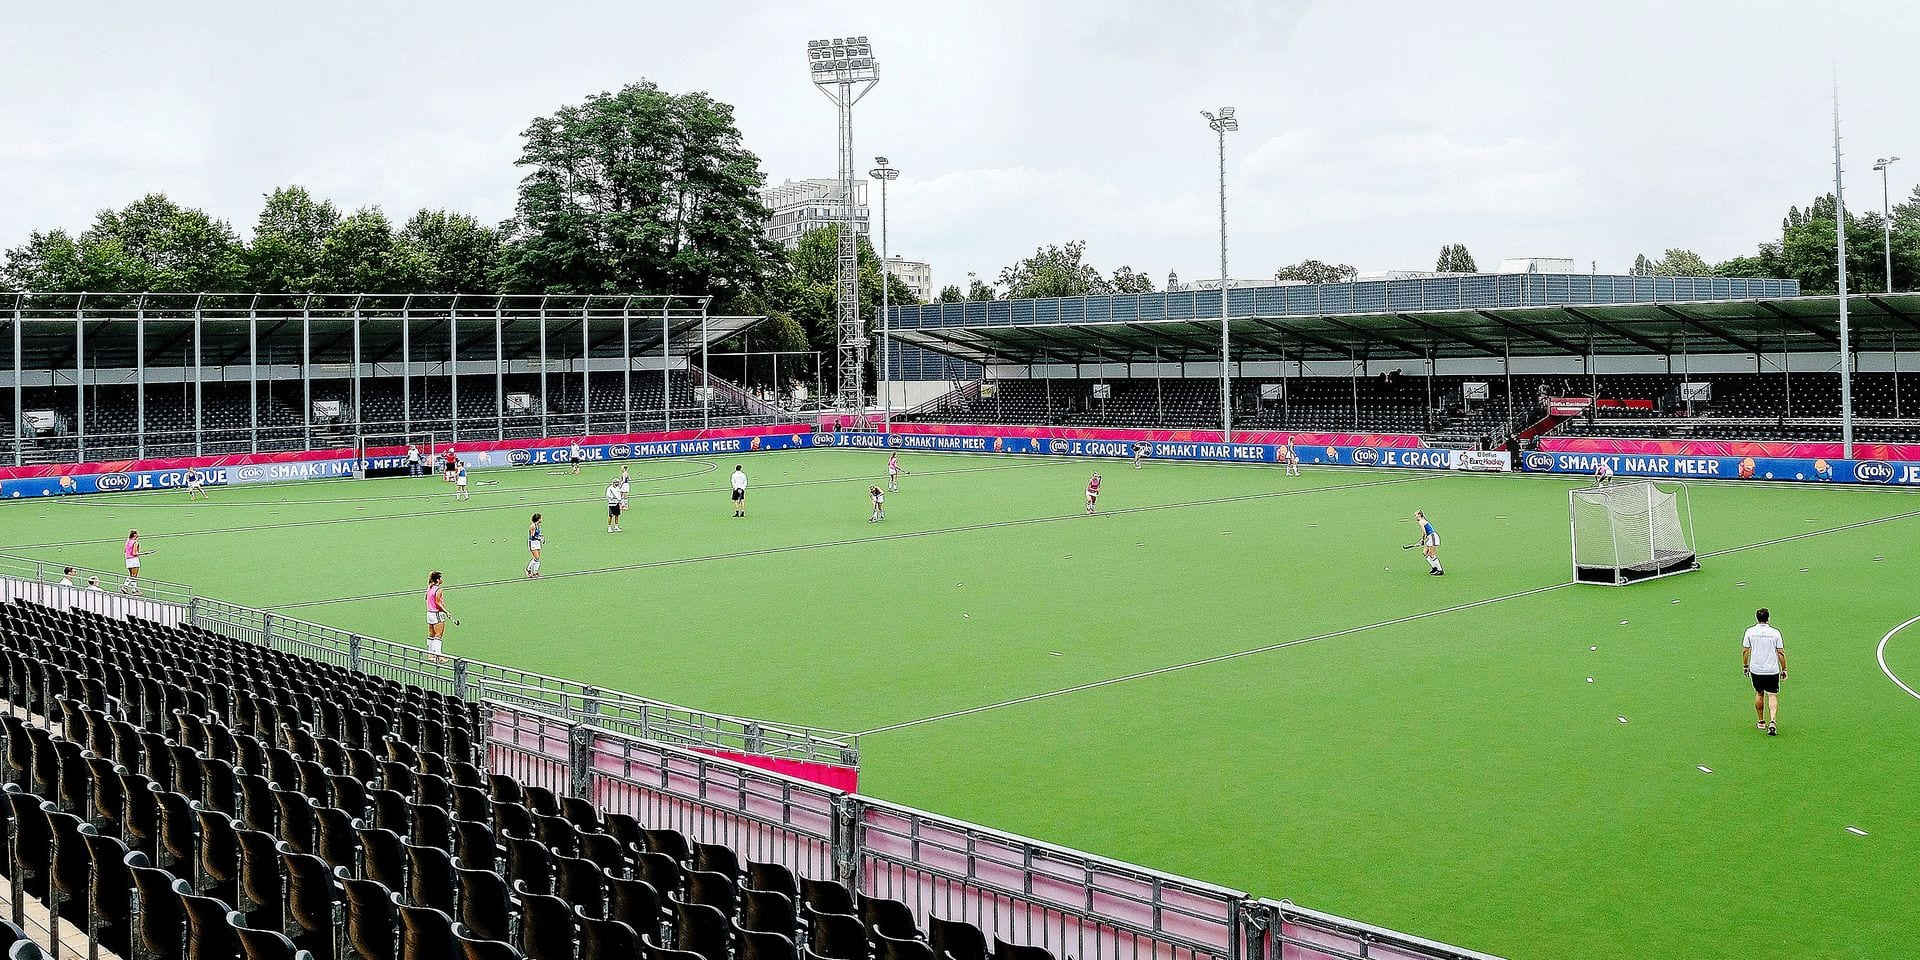 Illustration picture shows the German women's team during a training session, at the 'Wilrijkse Plein' hockey stadium, the location of the upcoming EuroHockey Championships, Wednesday 14 August 2019 in Wilrijk, Antwerp. BELGA PHOTO DIRK WAEM